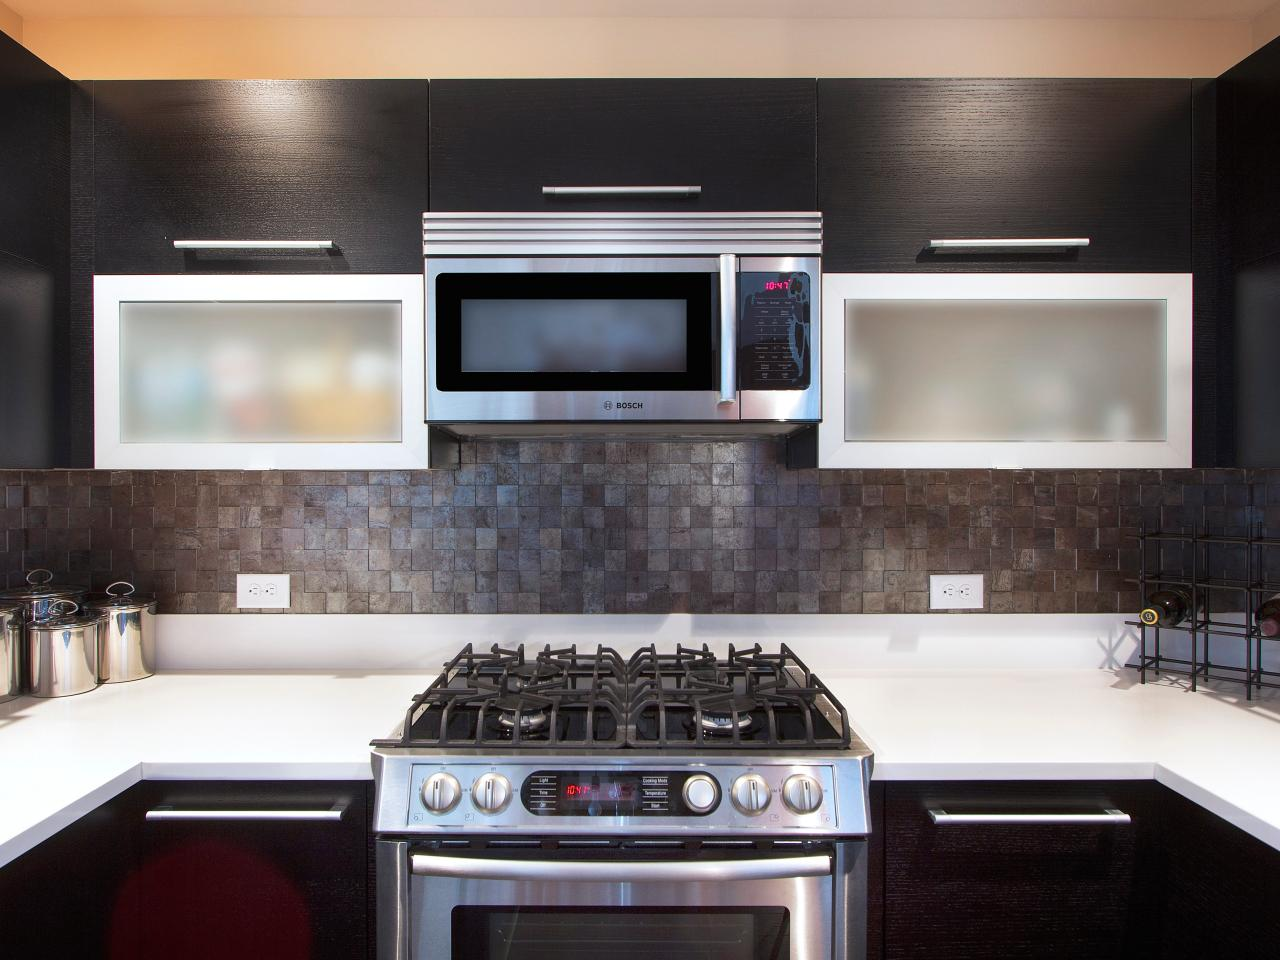 Tile Backsplash Ideas & Tips From HGTV